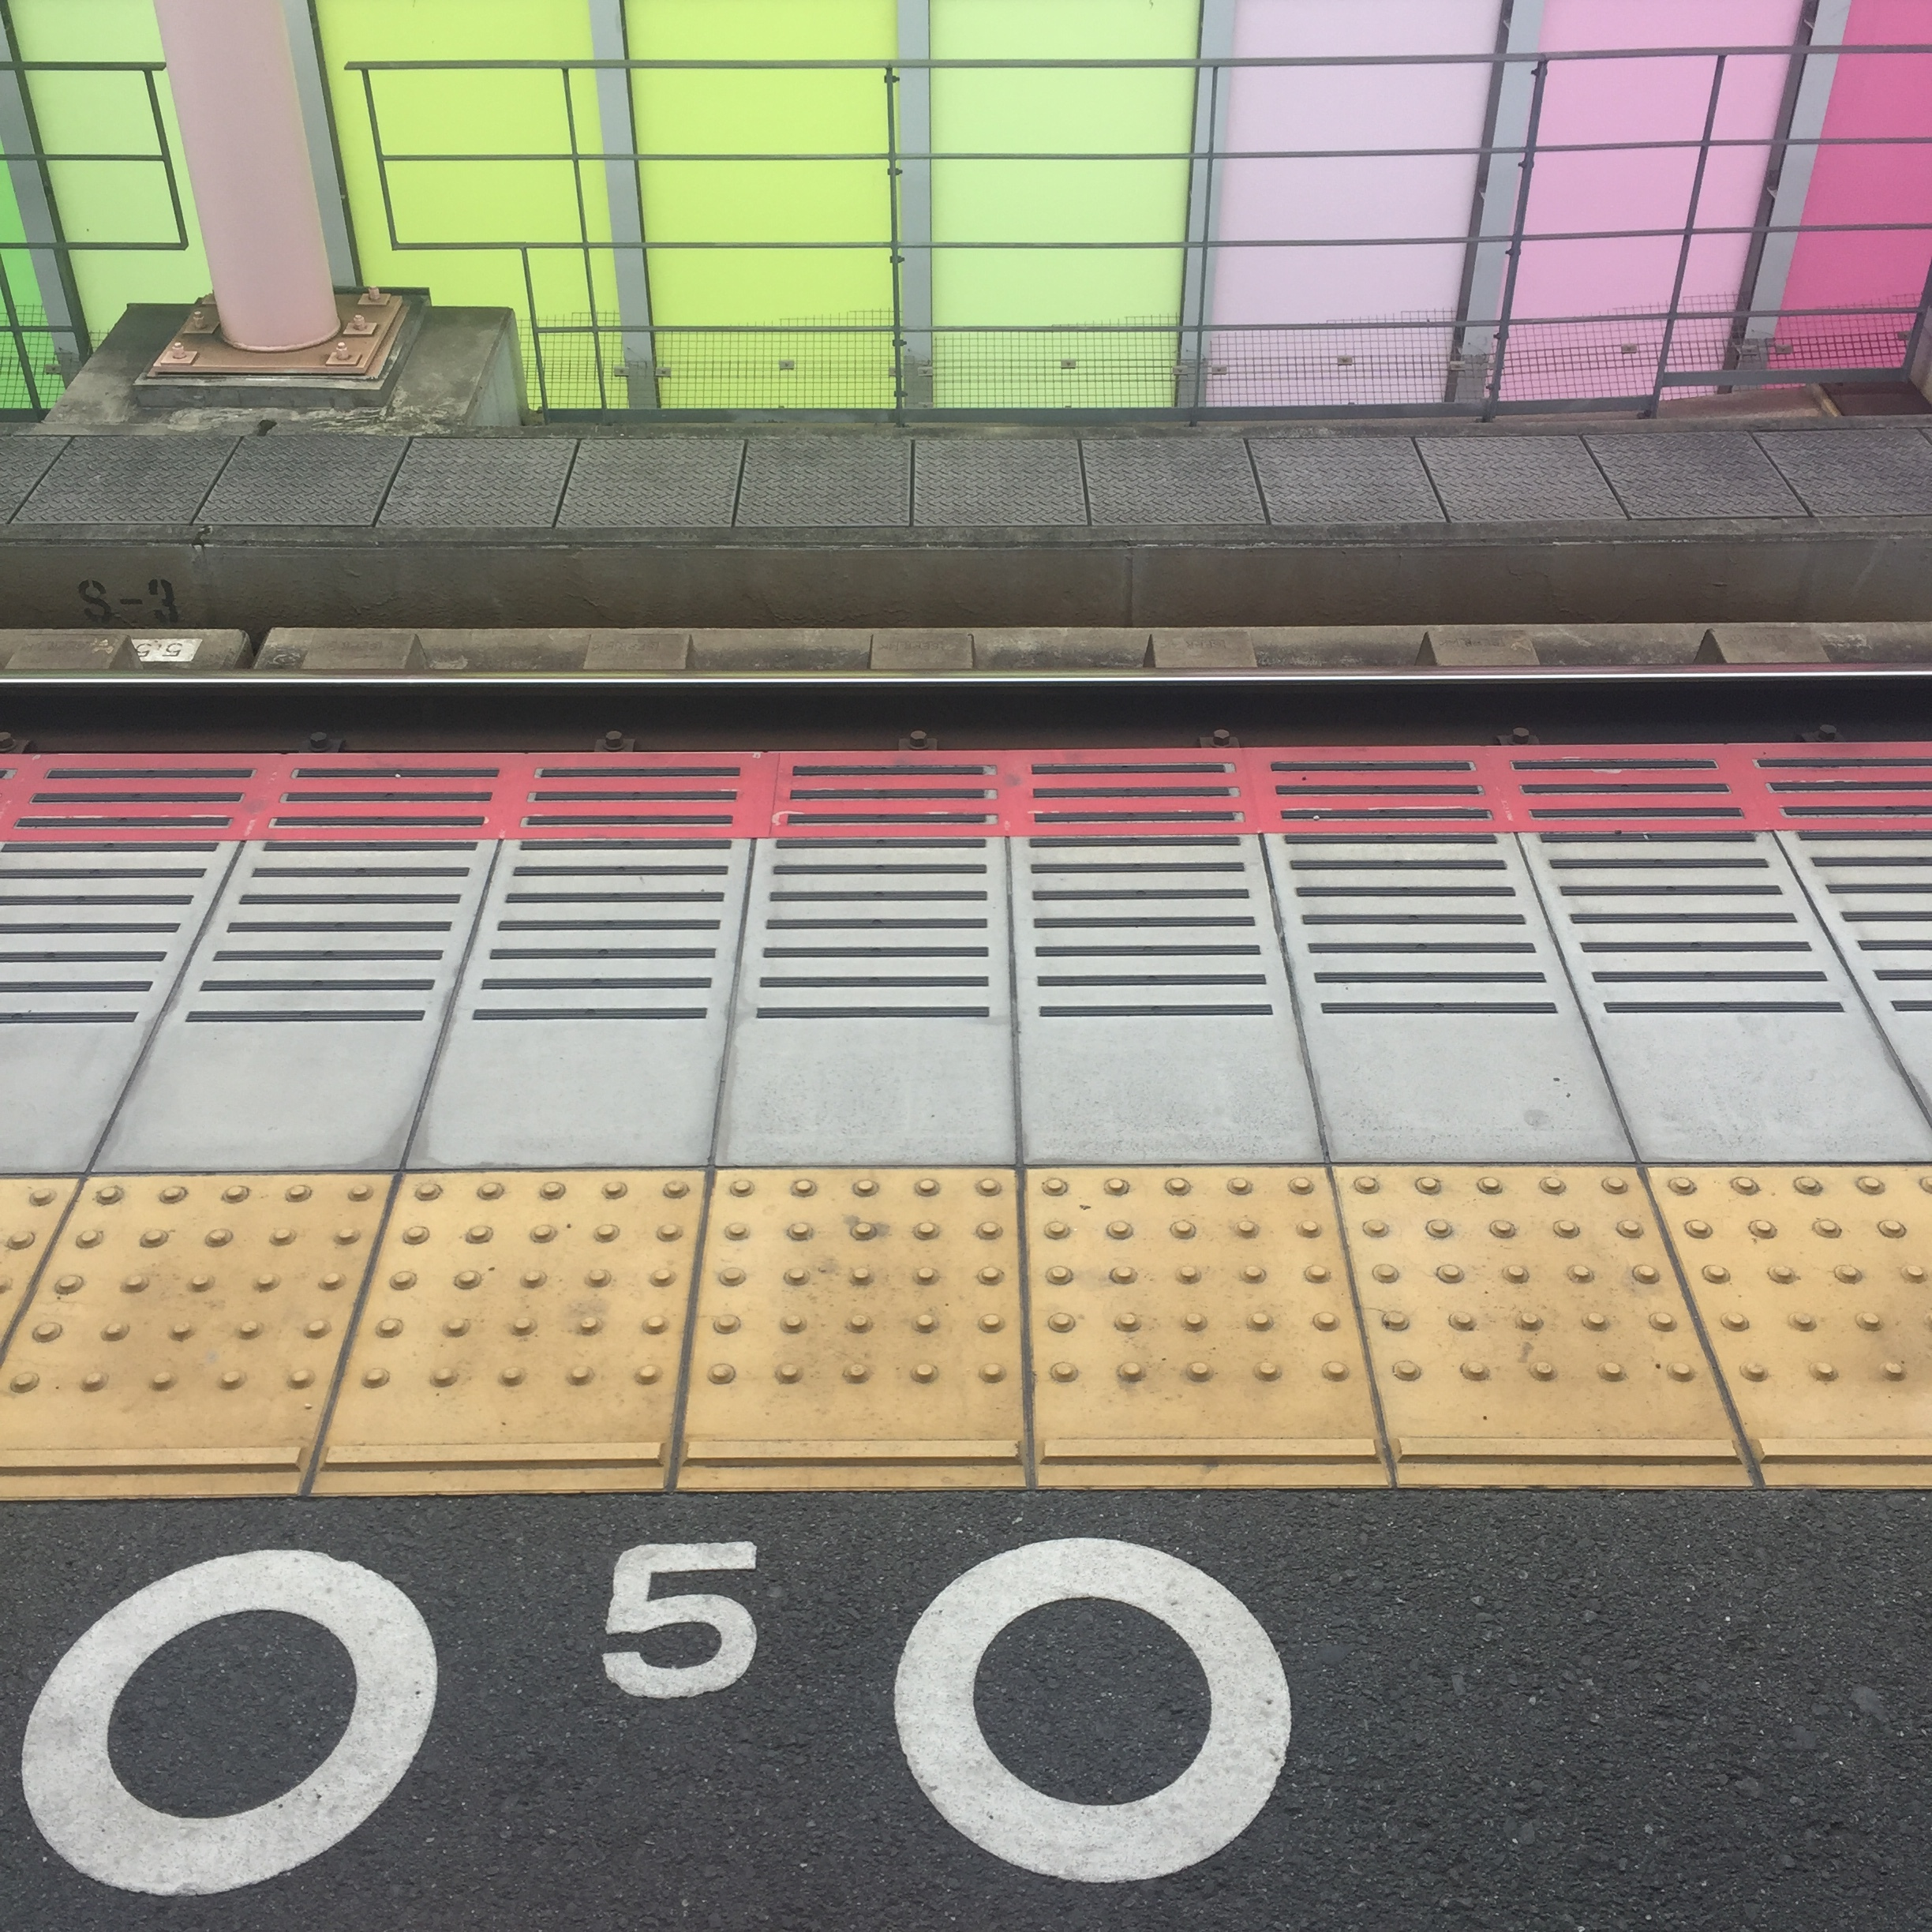 More colourful station markings